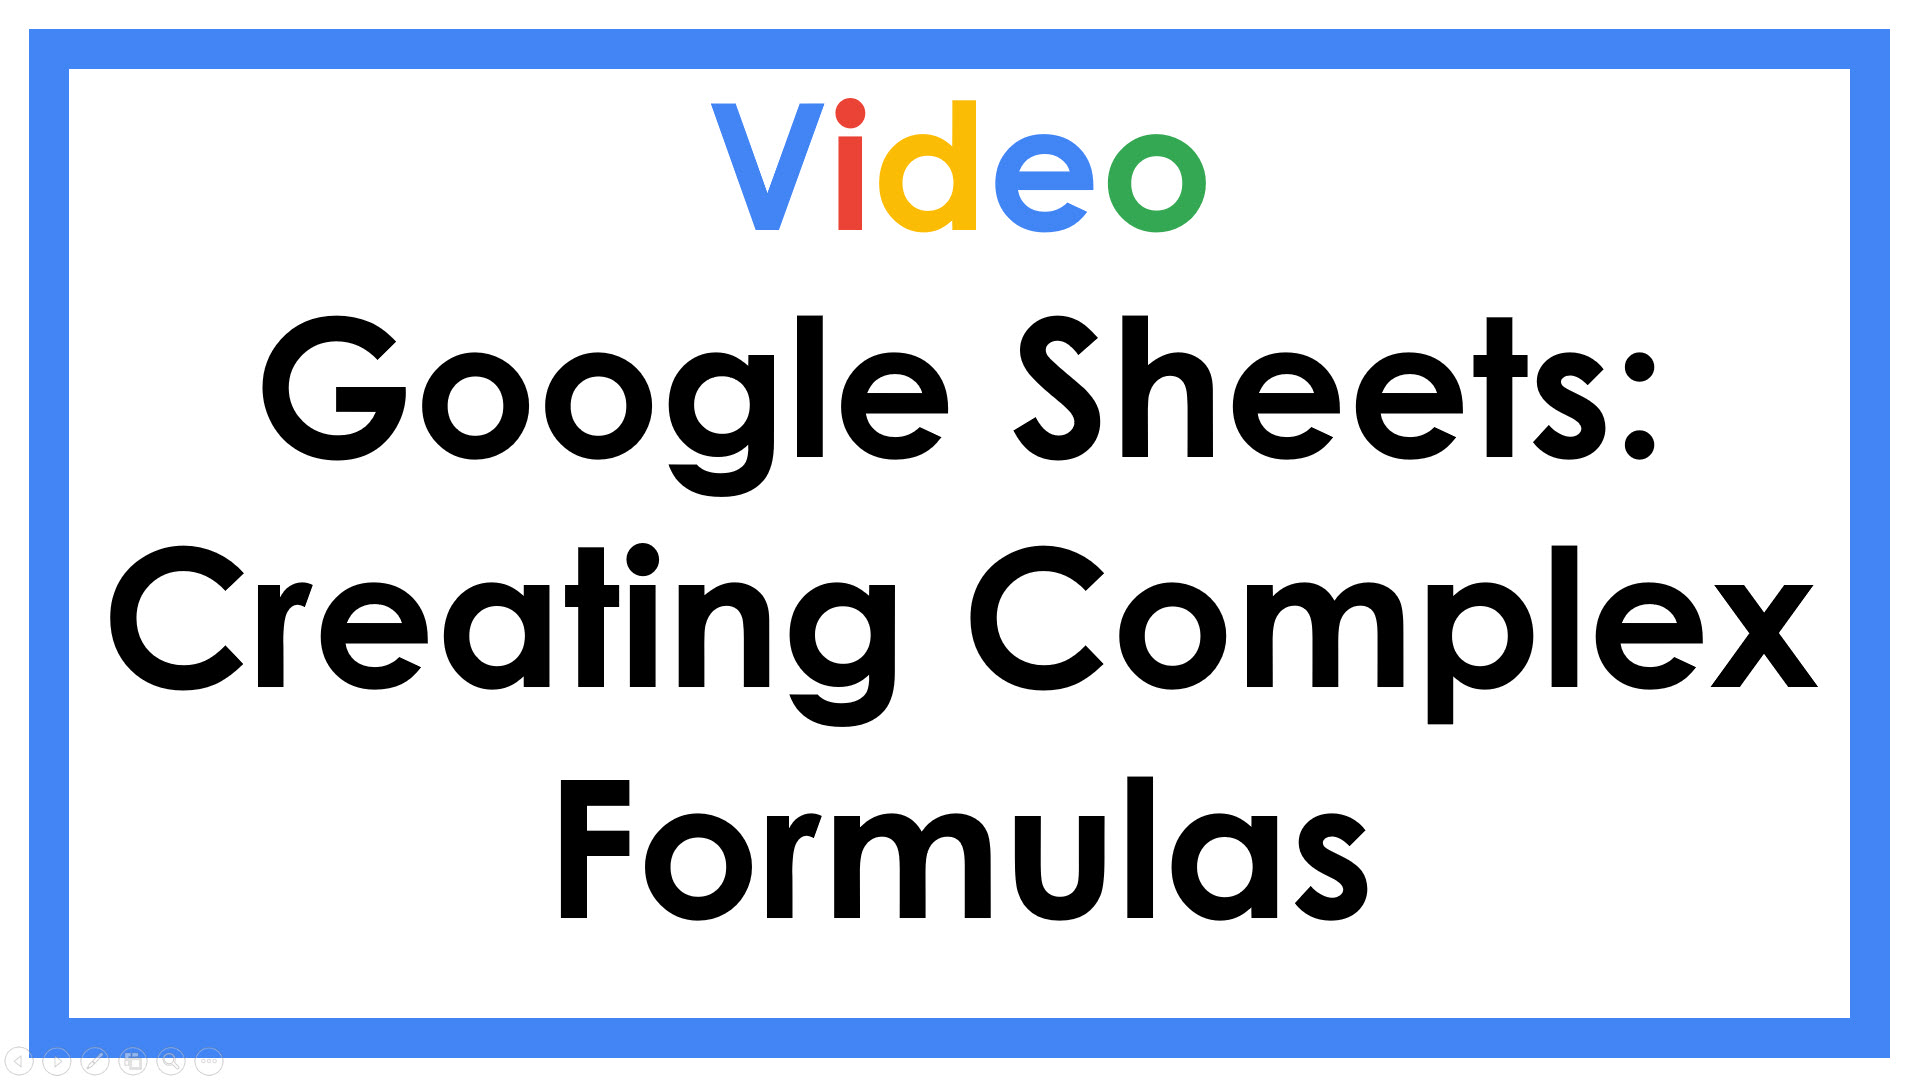 Google Sheets: Creating Complex Formulas